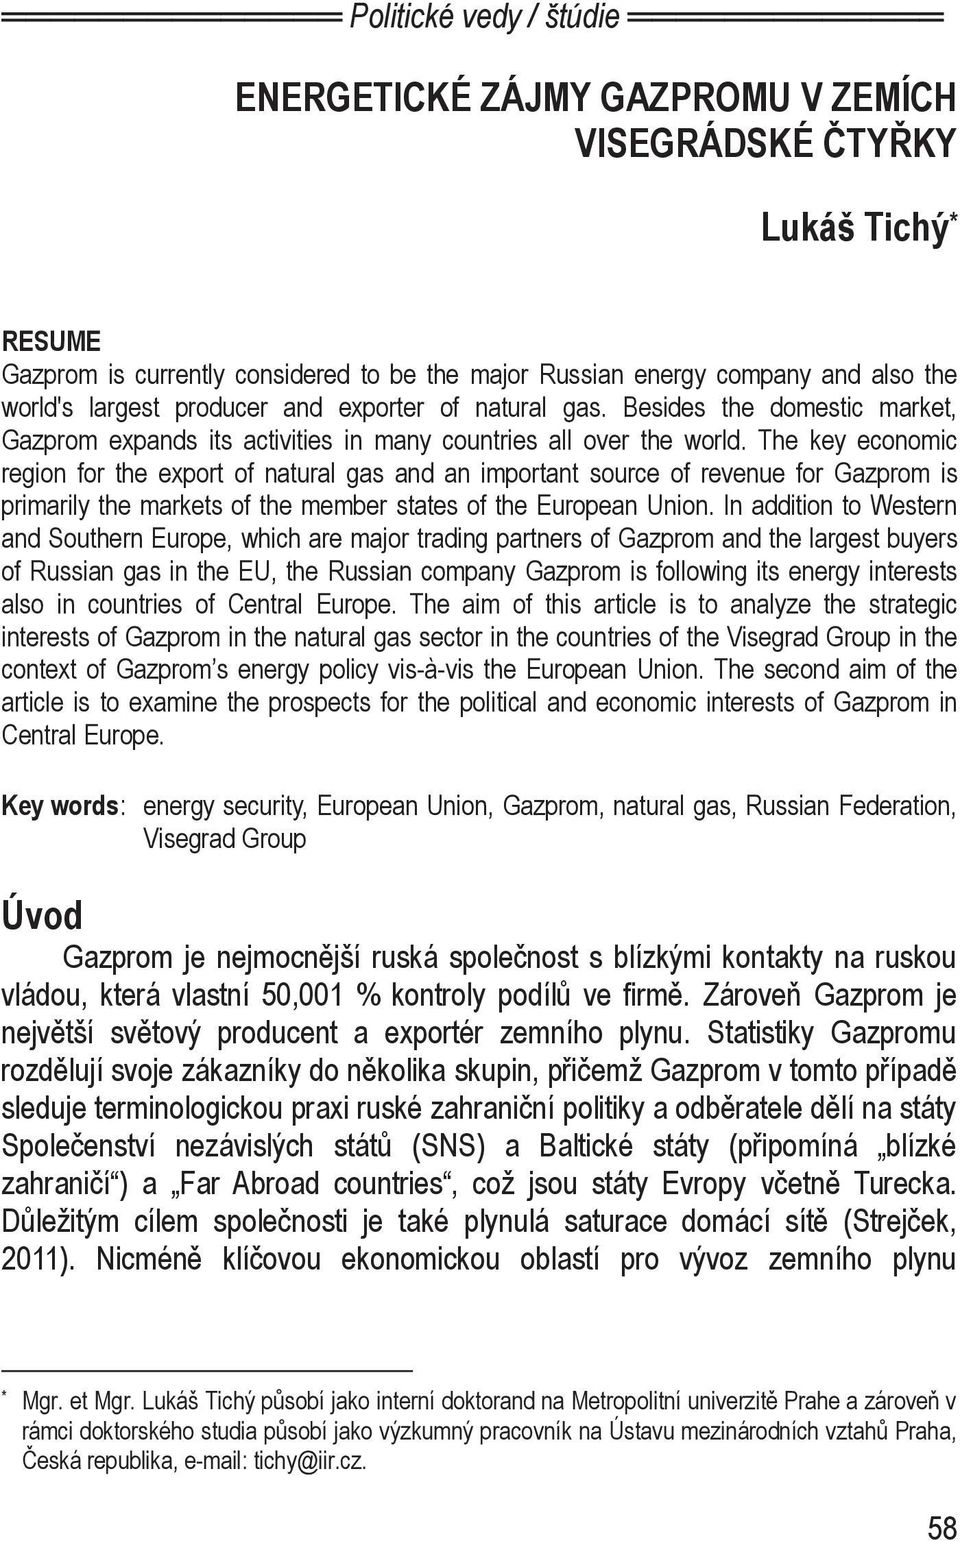 The key economic region for the export of natural gas and an important source of revenue for Gazprom is primarily the markets of the member states of the European Union.